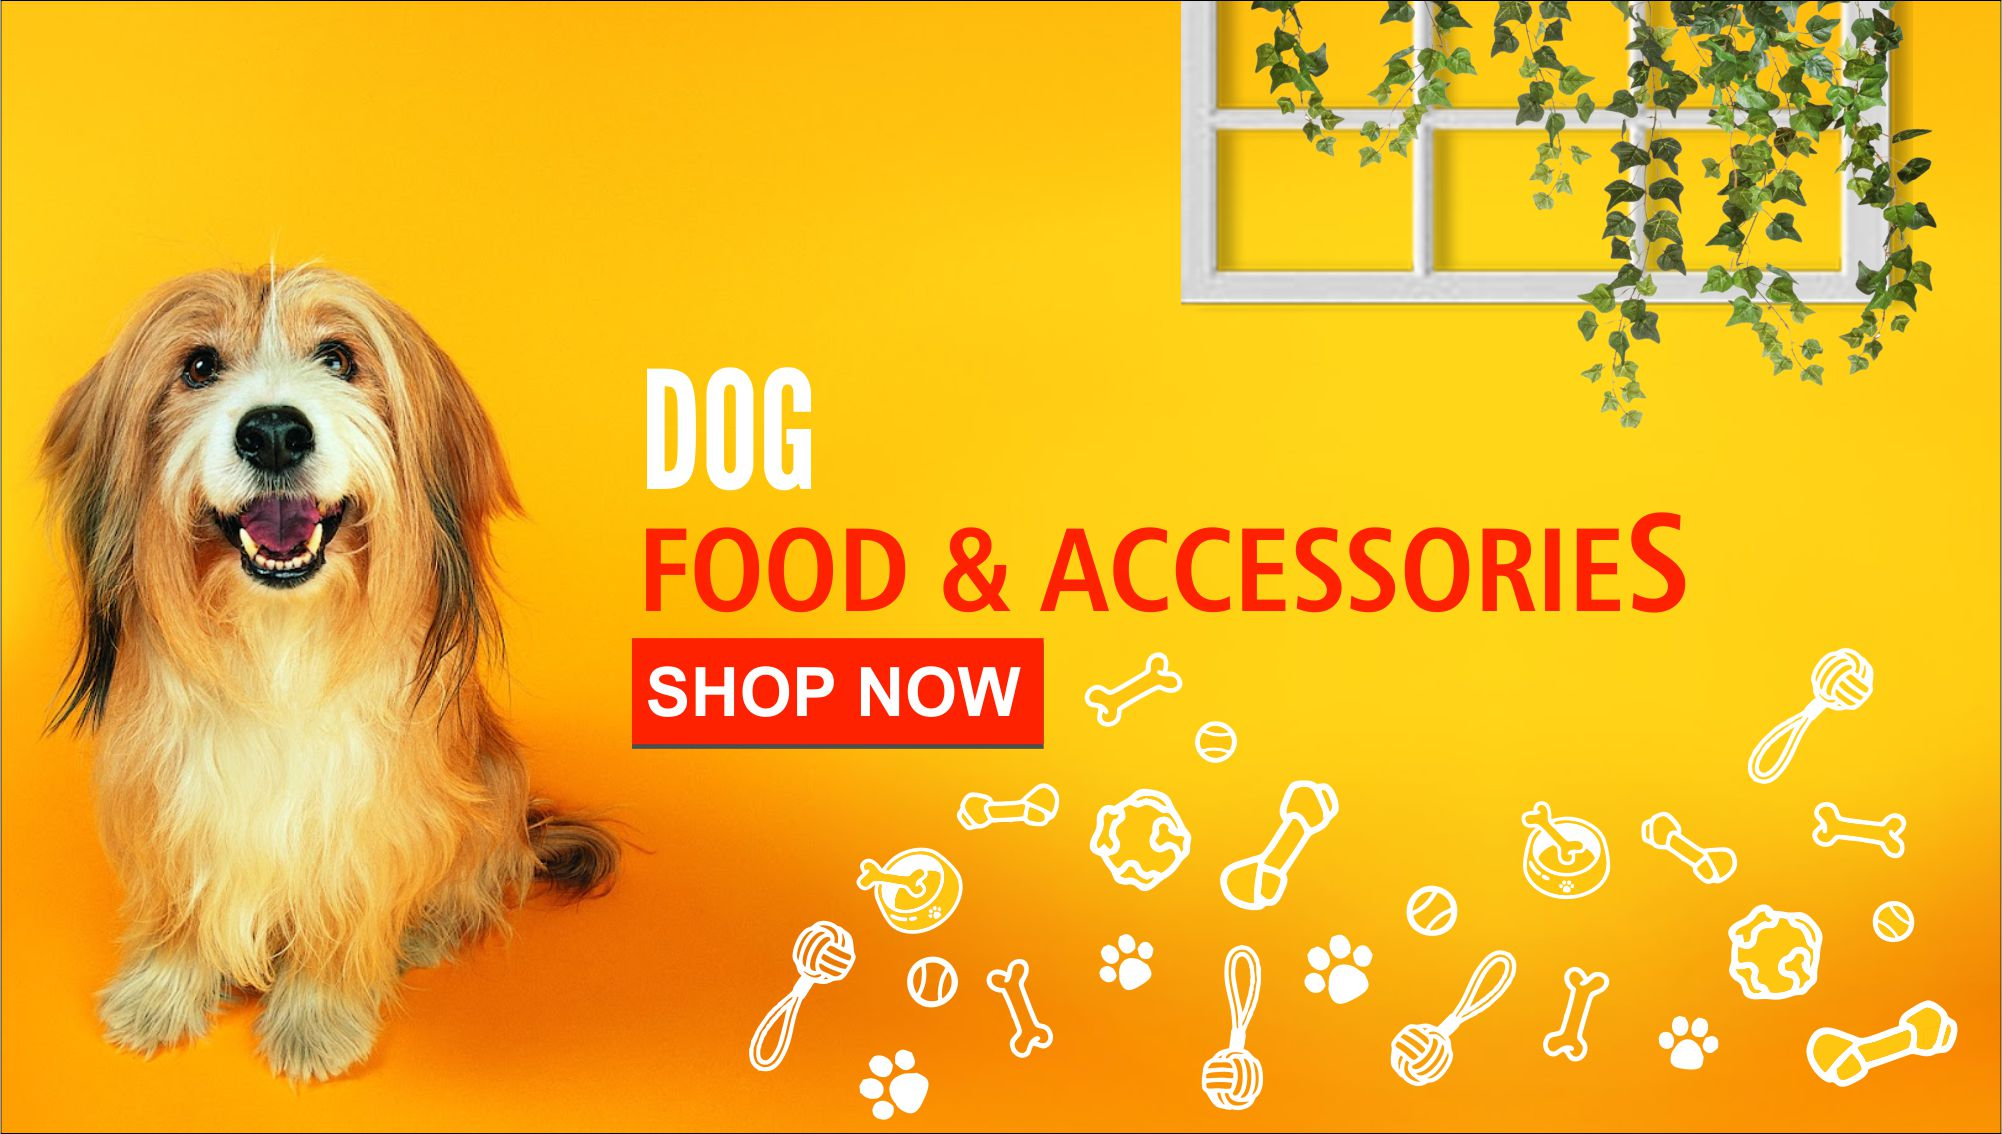 Dog food and accessories